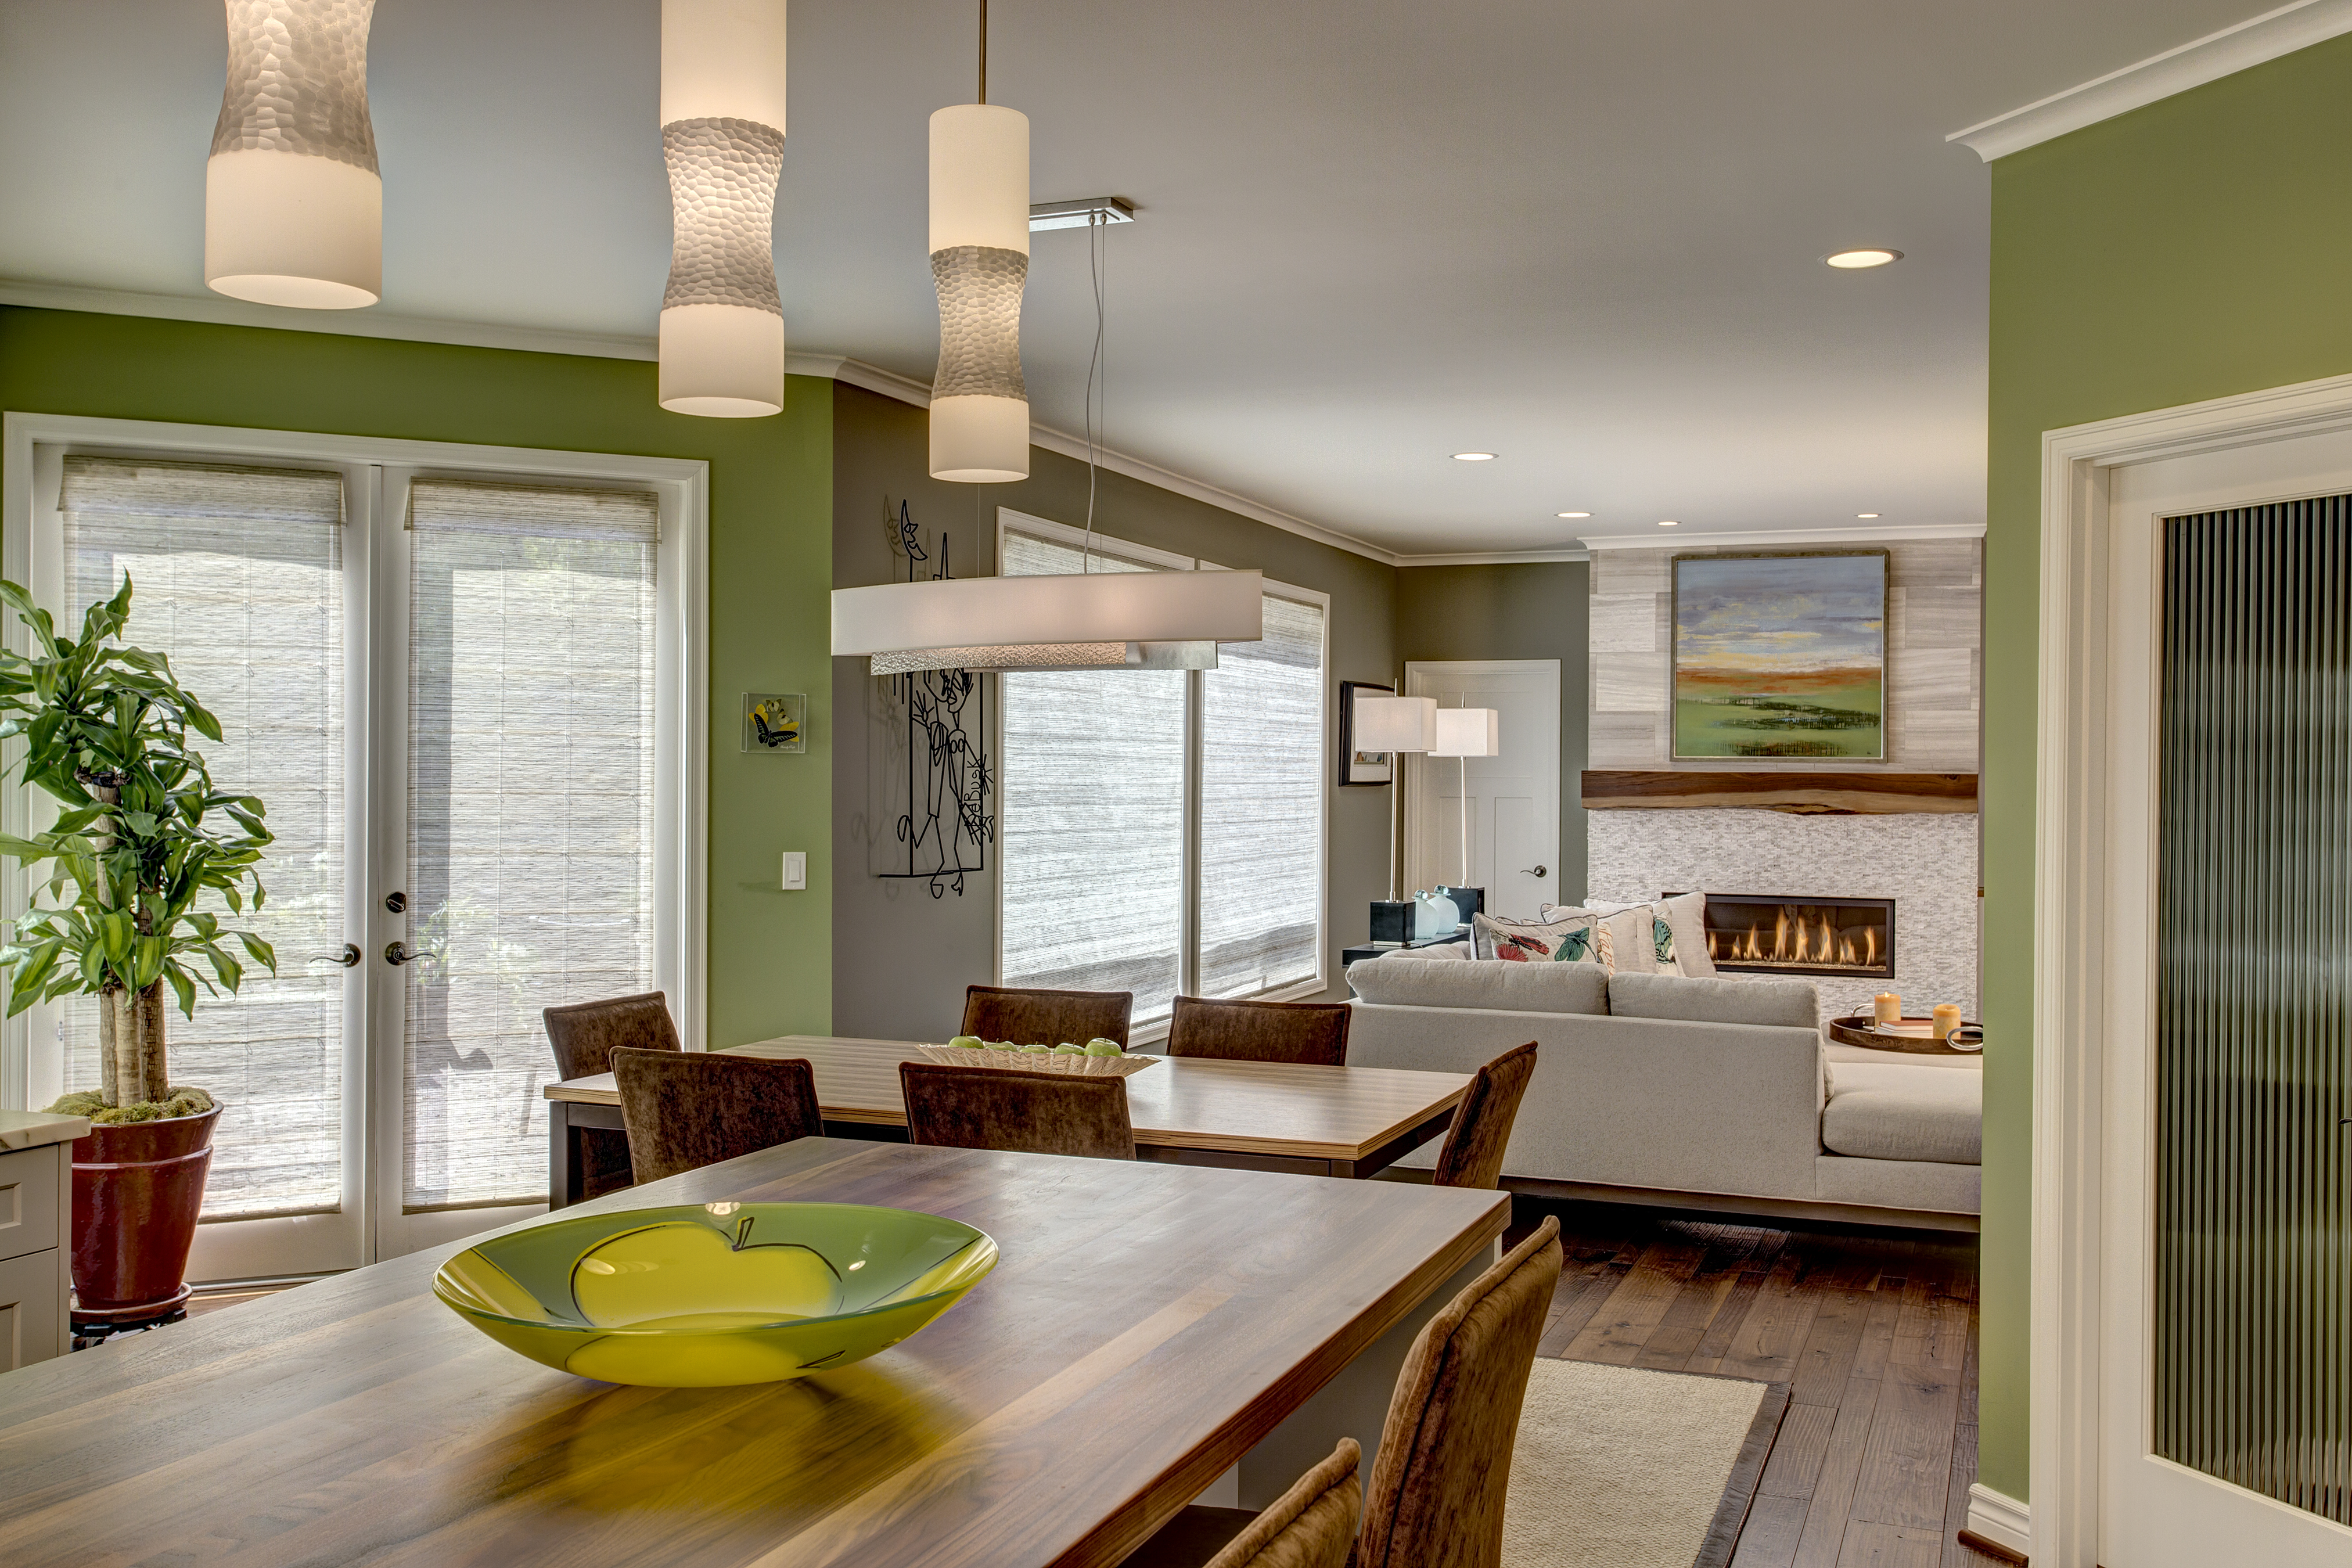 ROI of remodeling